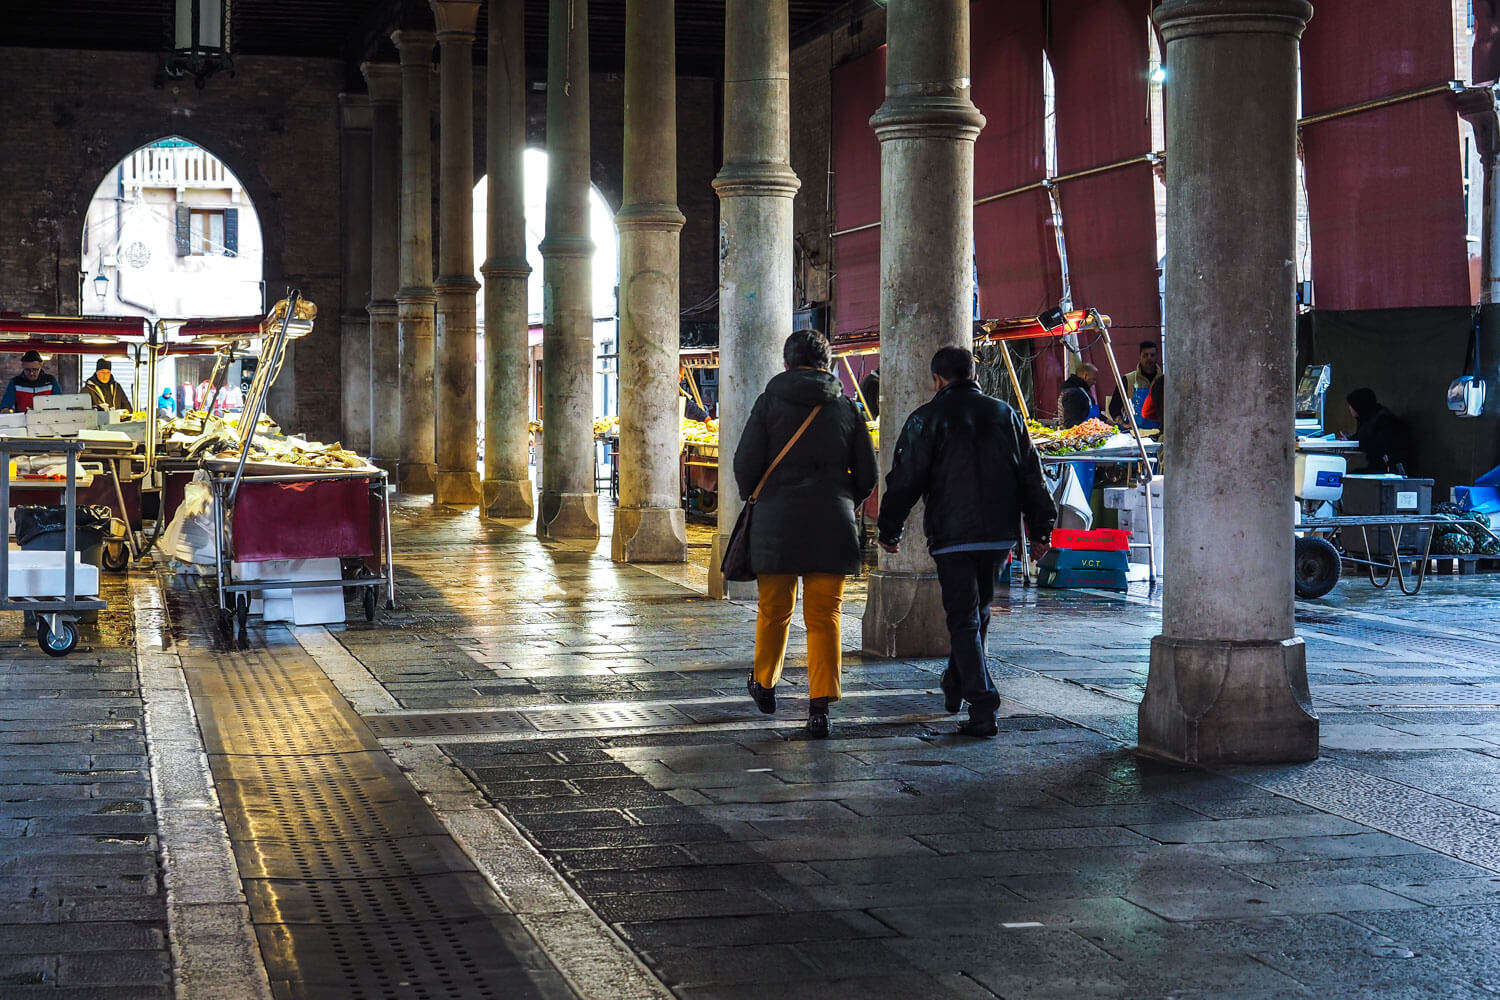 Venice,fish stalls, travel photography3